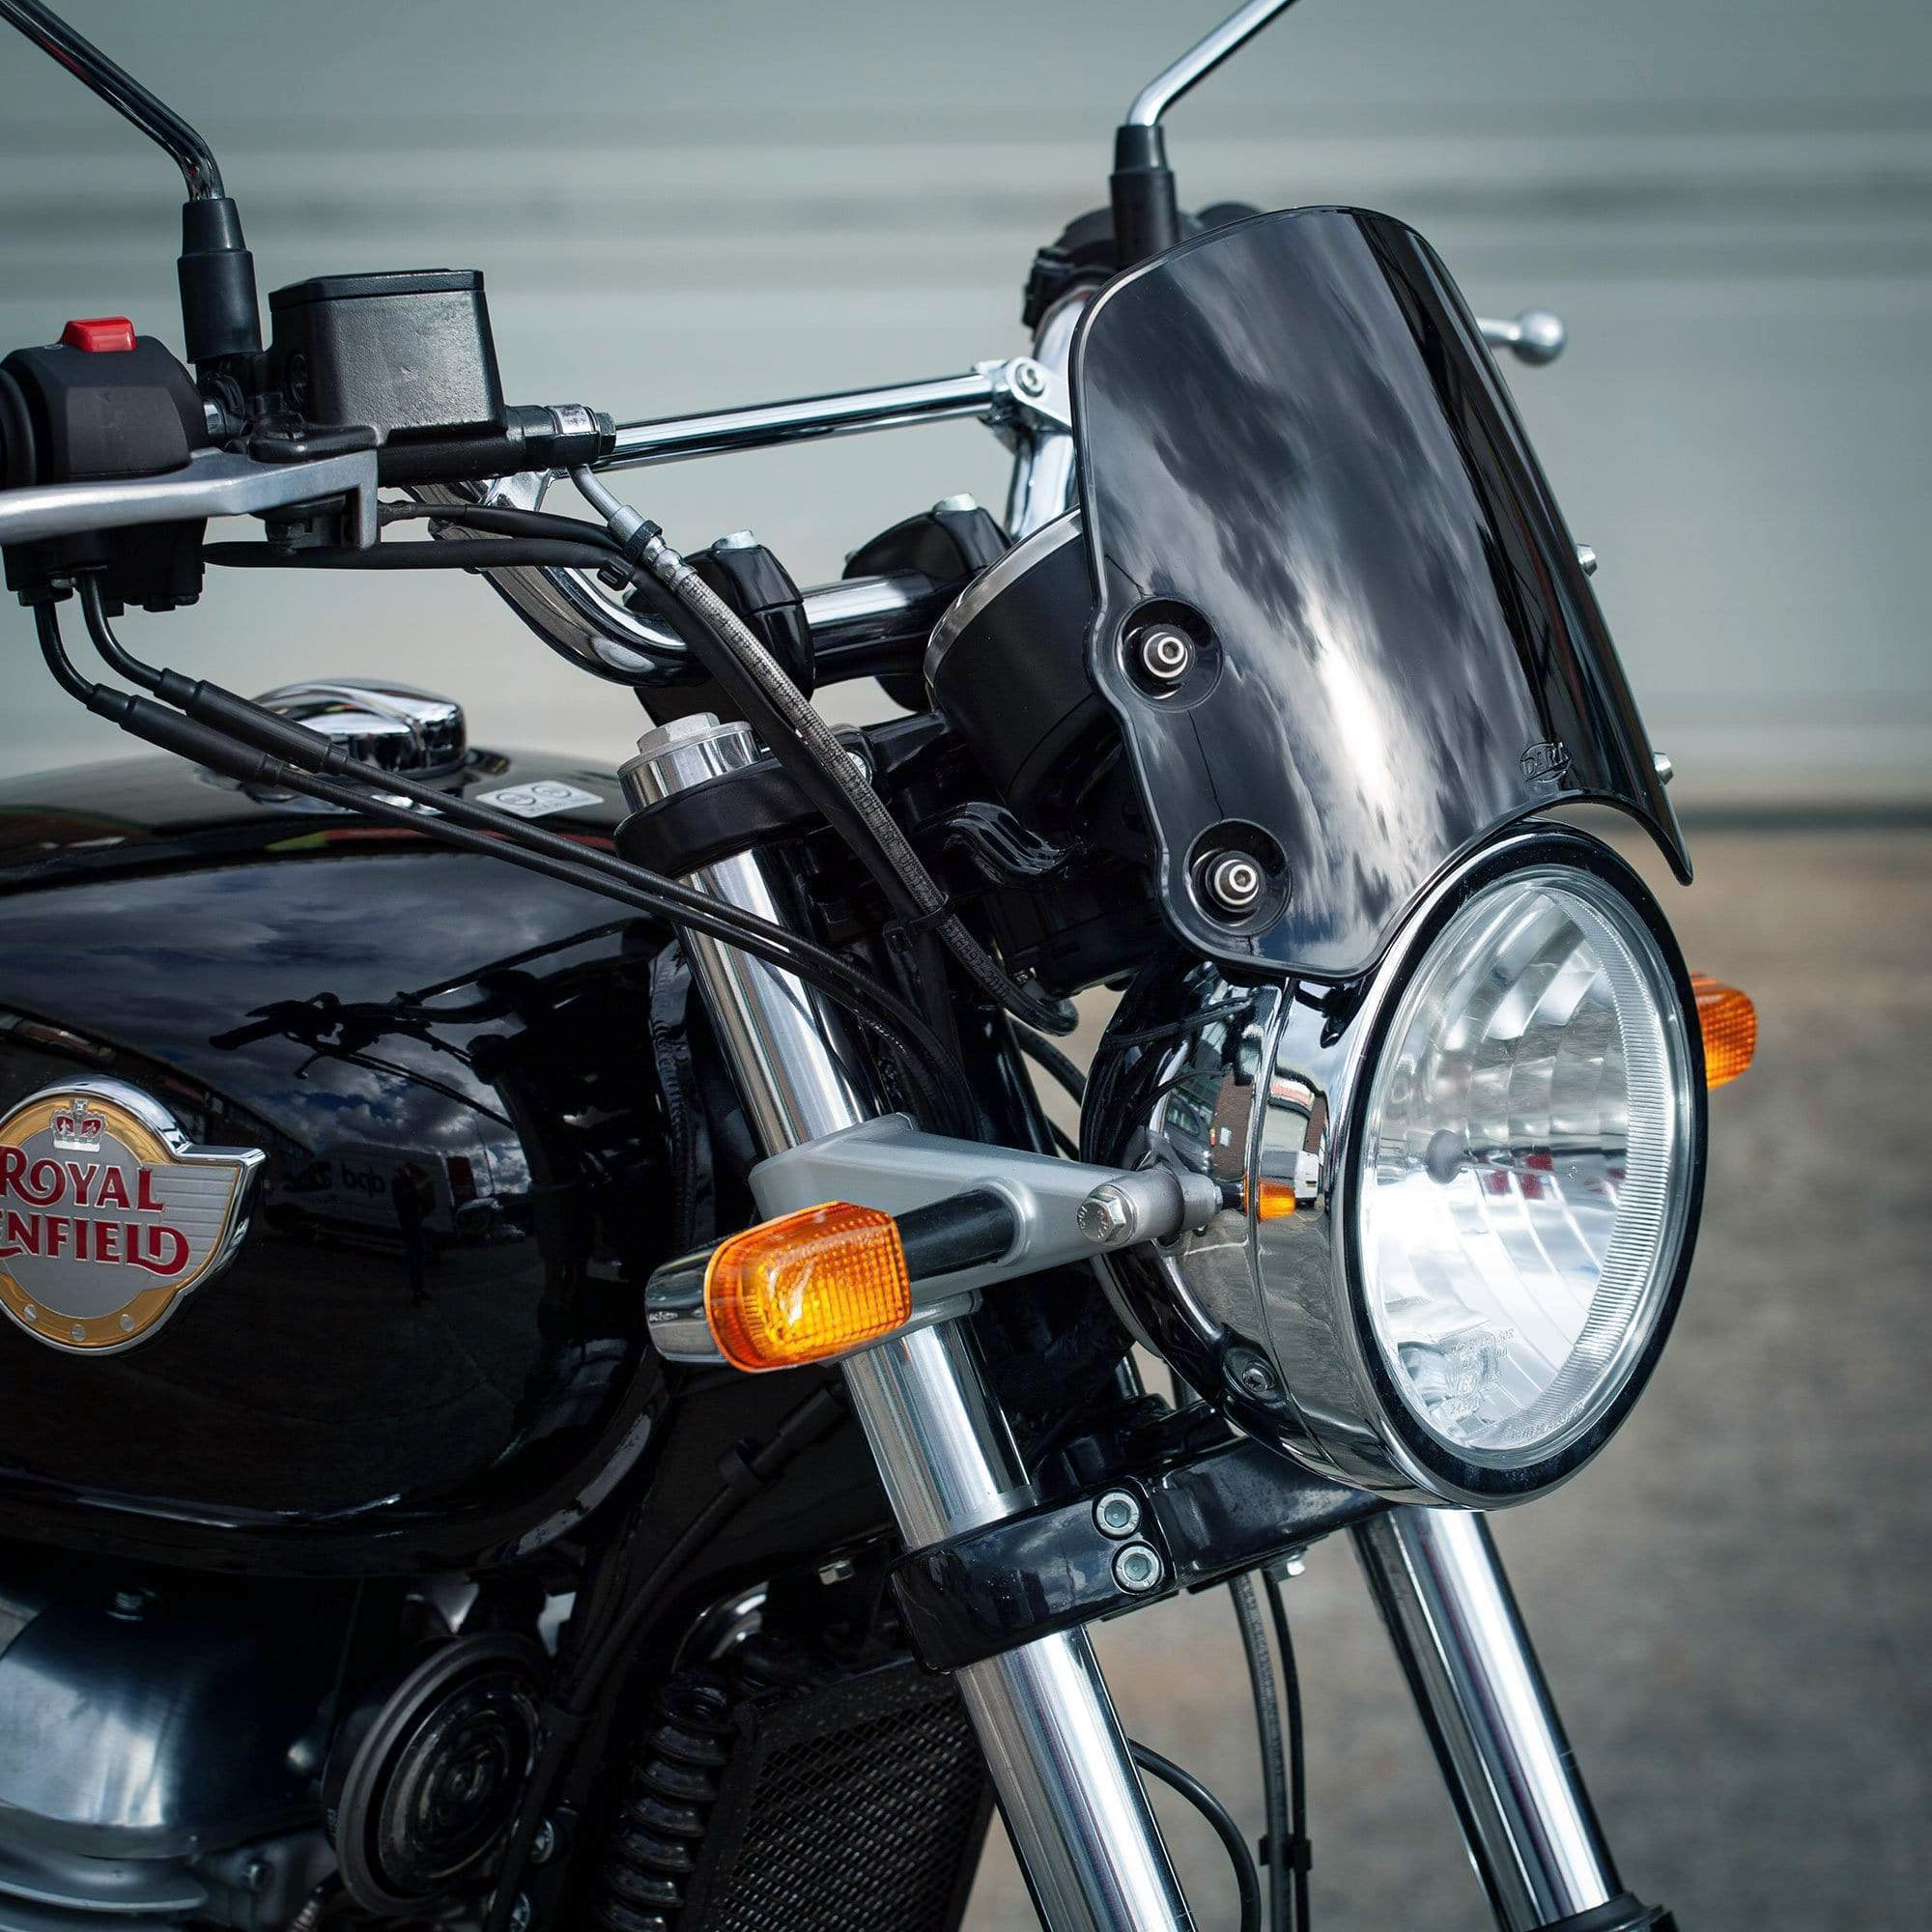 Royal Enfield Interceptor 650 - Piranha Midnight Black Piranha flyscreen Dart Flyscreen Windshield